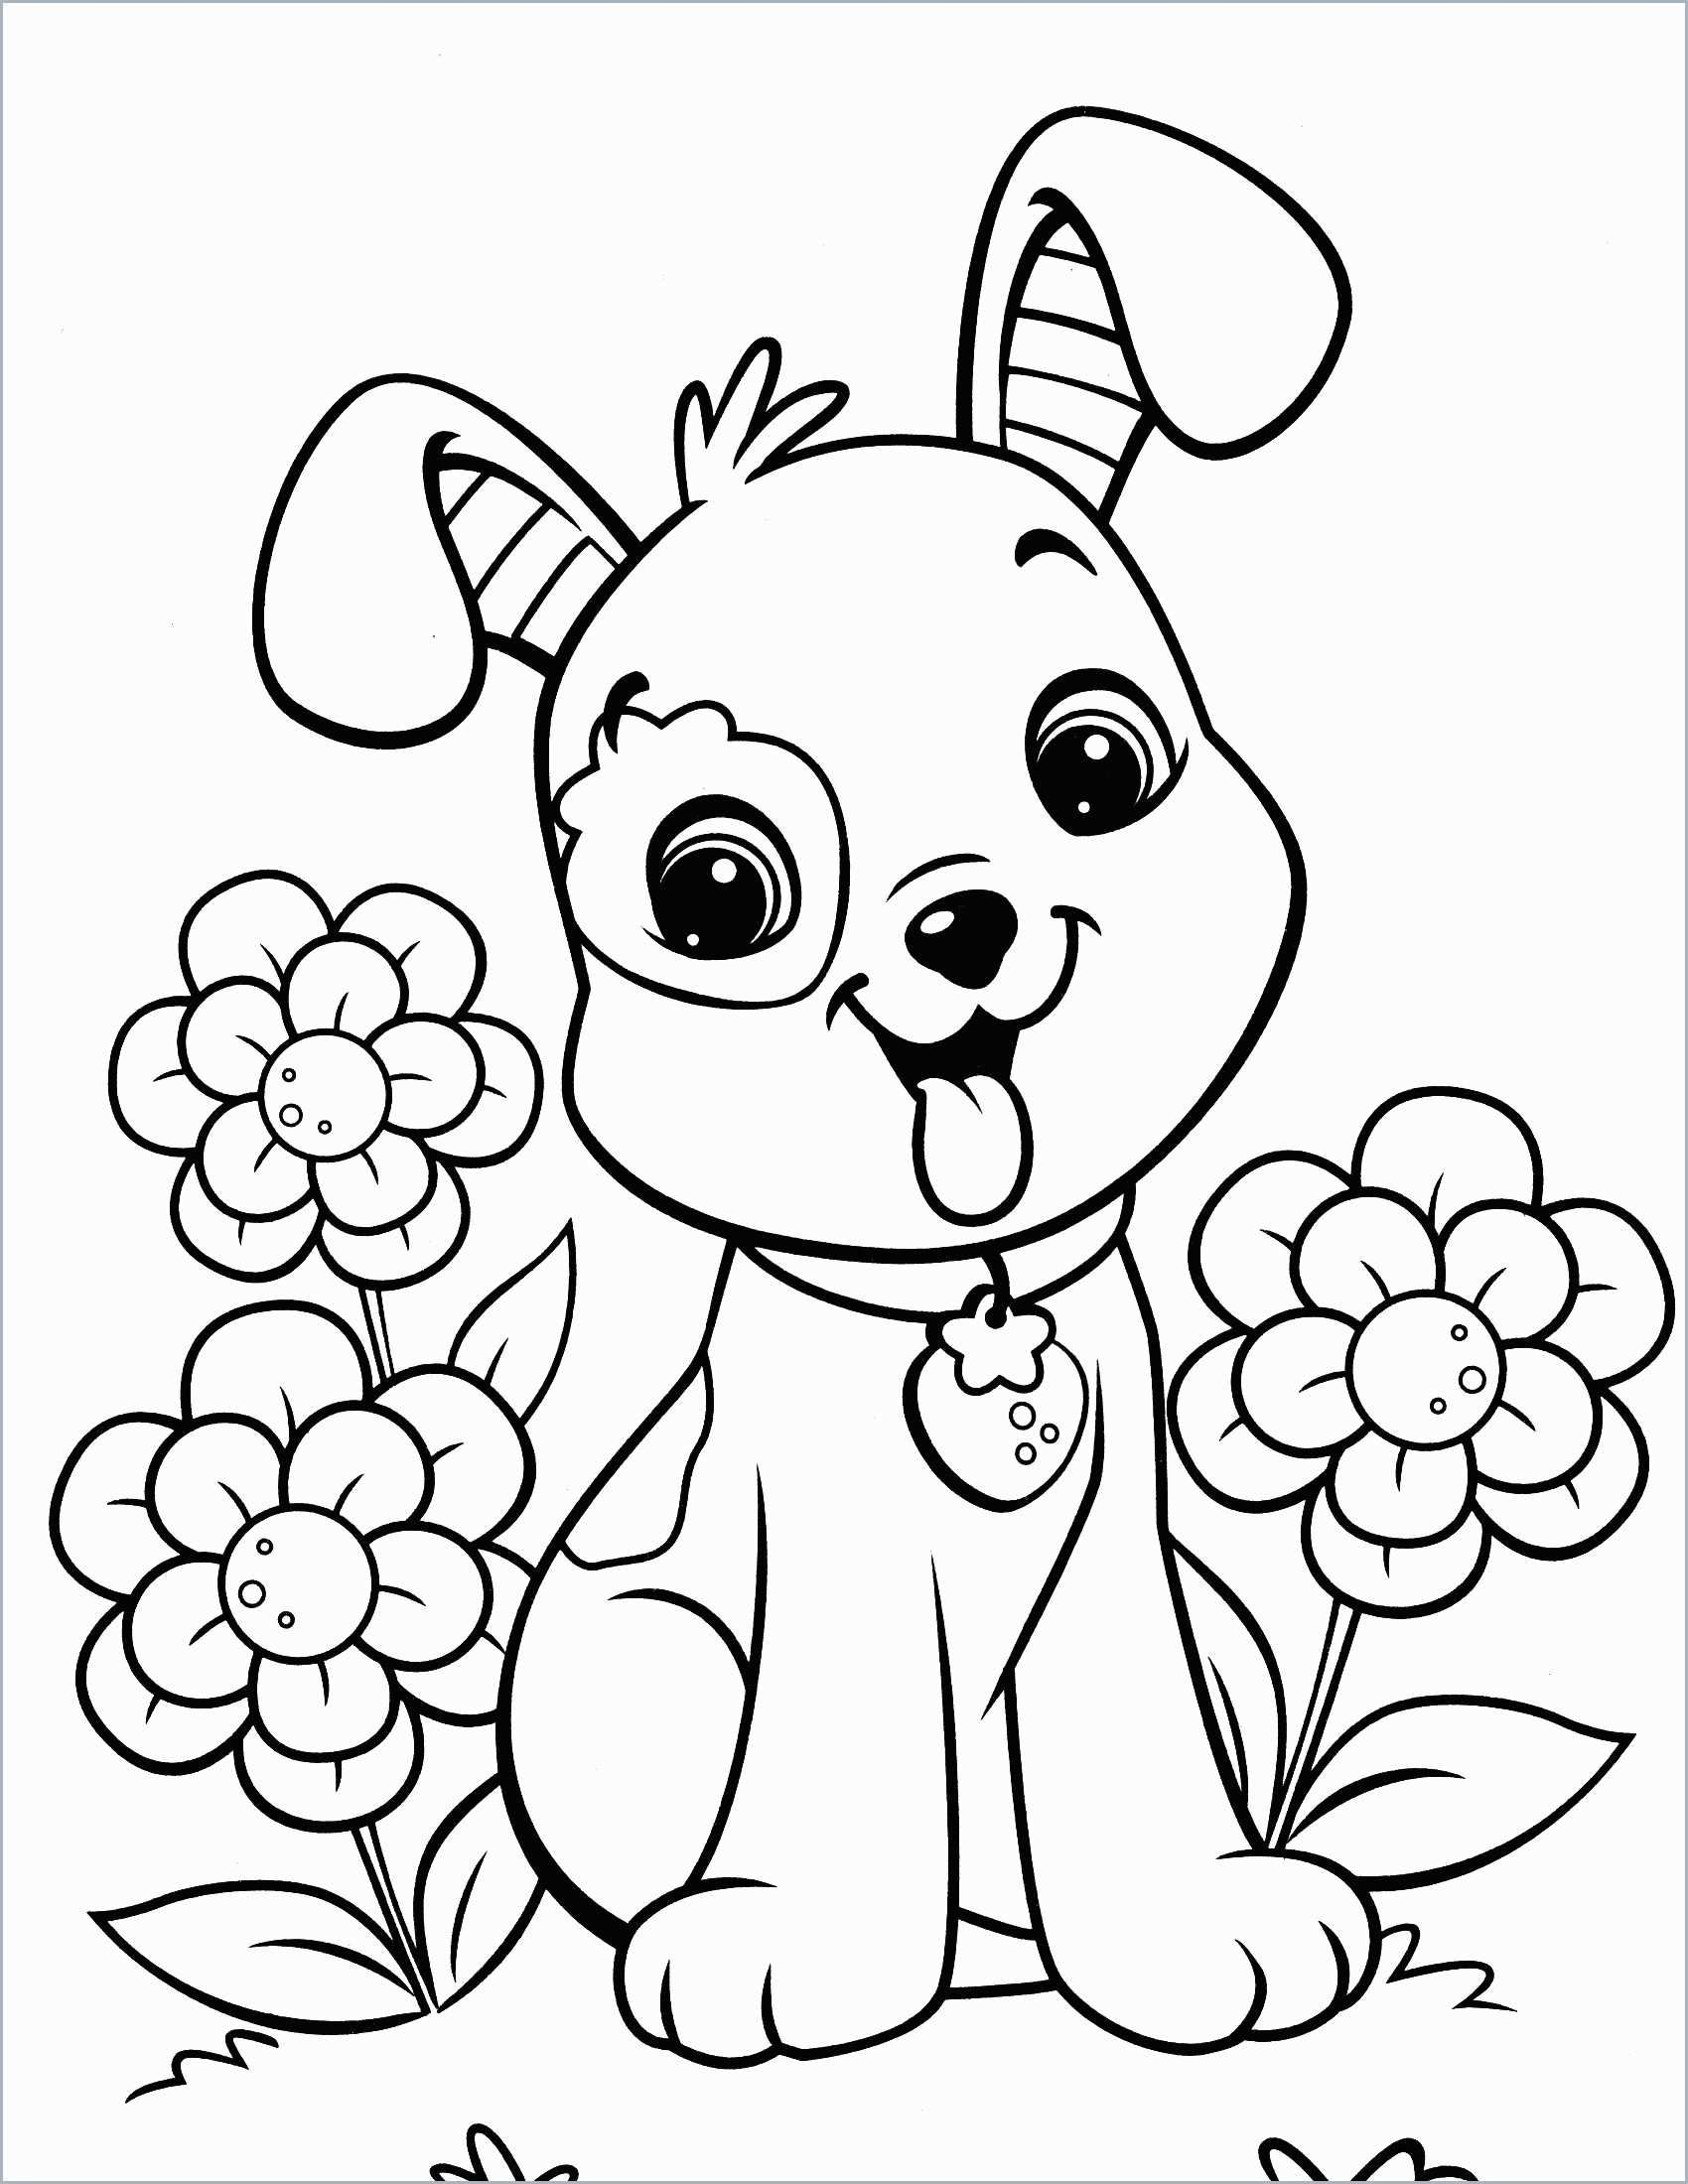 Printable Puppy Coloring Pages Ideas Puppy Coloring Pages Dog Coloring Page Cute Coloring Pages